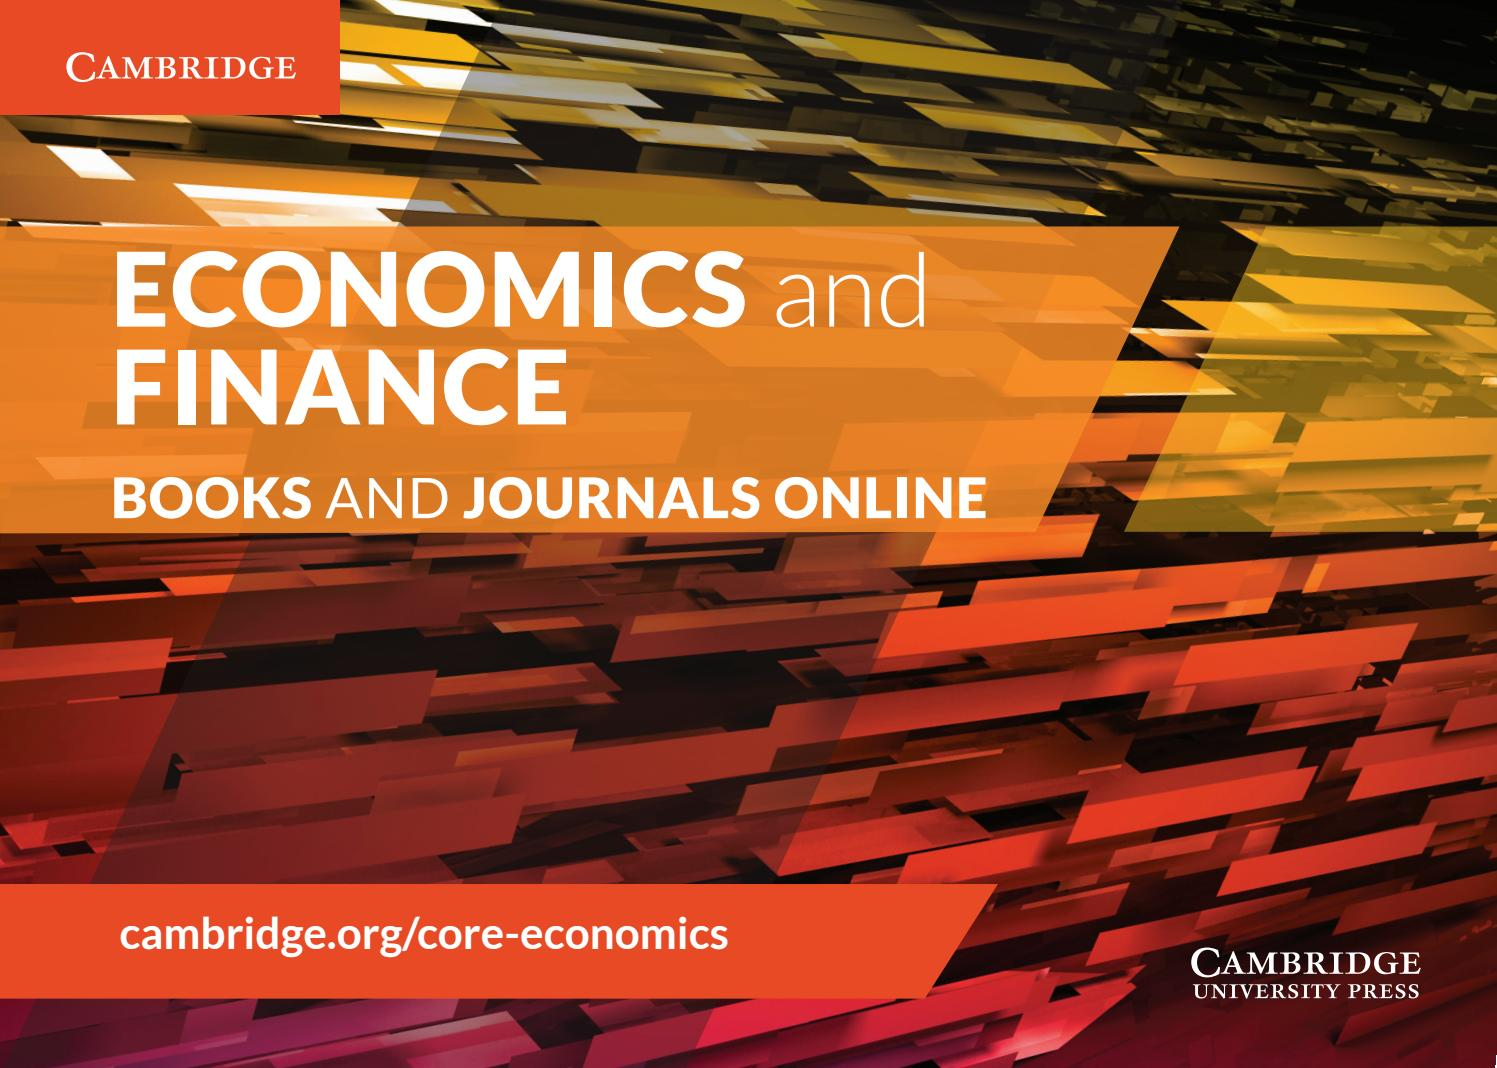 Economics and Finance Books and Journals Online by Cambridge